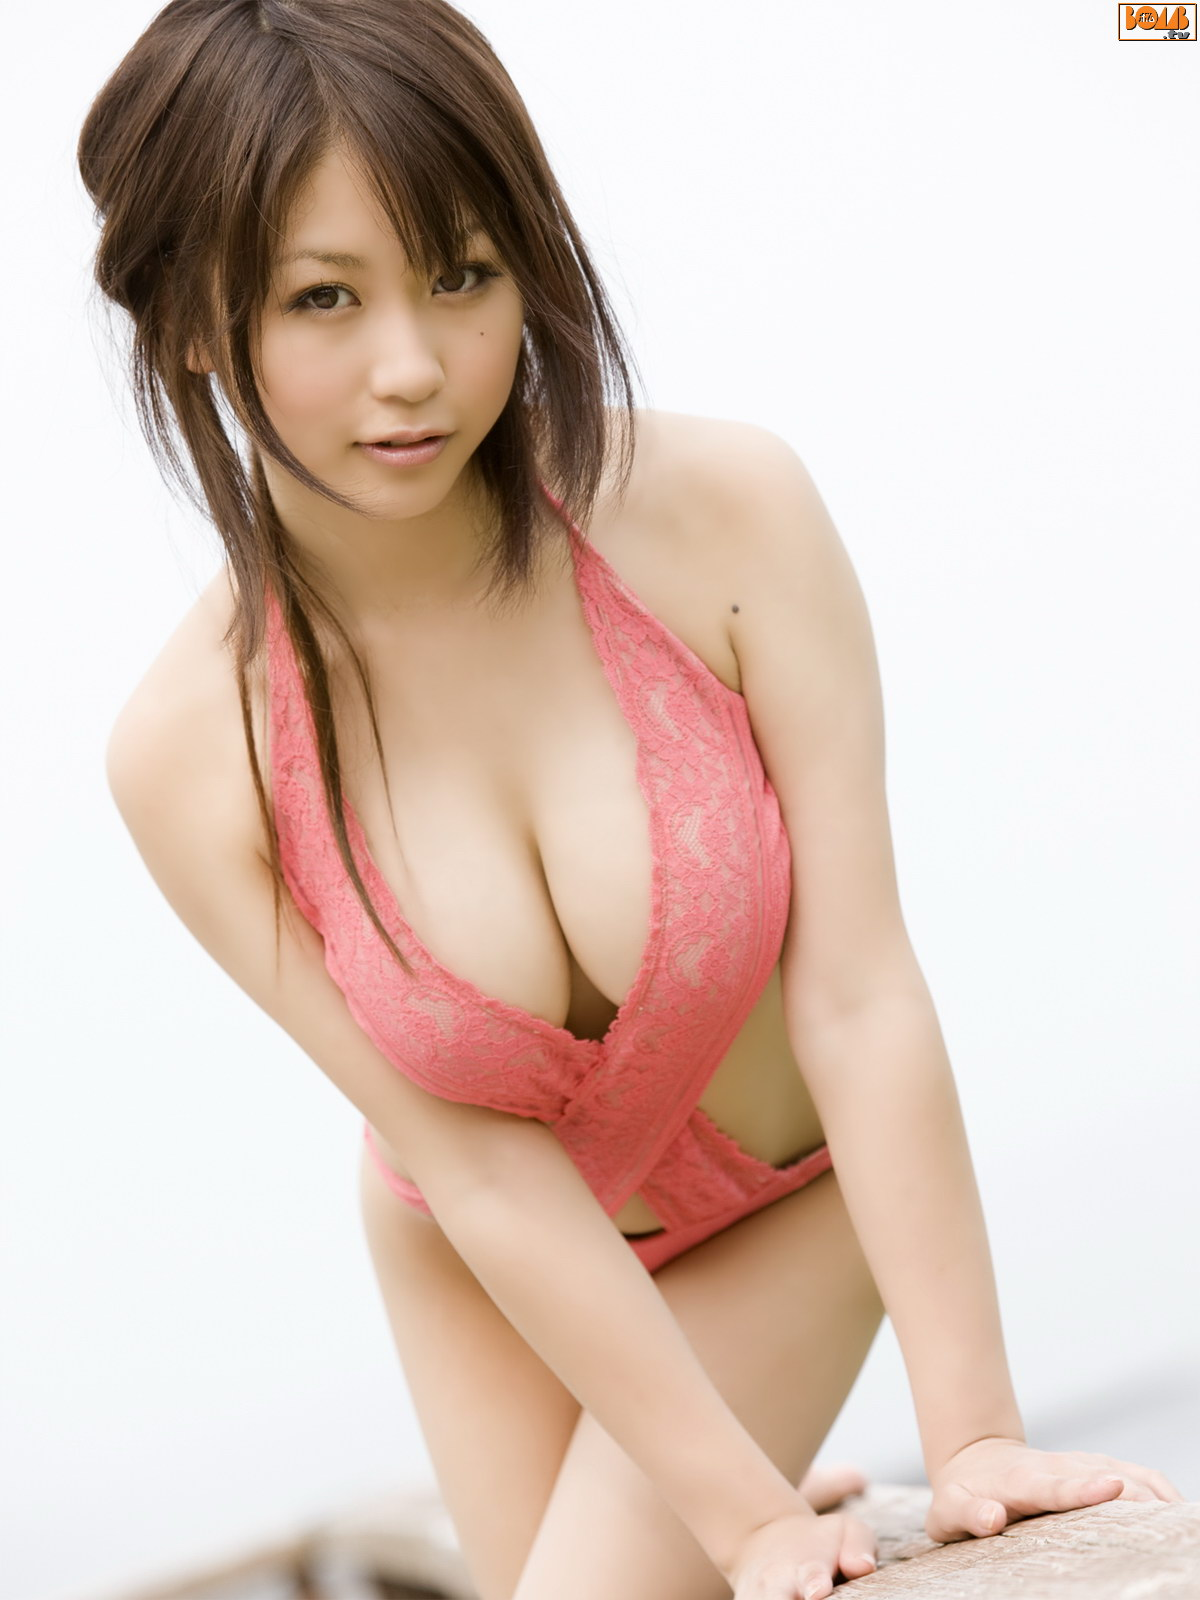 mai-nishida-hot-asian-japanese-idol-sexy-girls